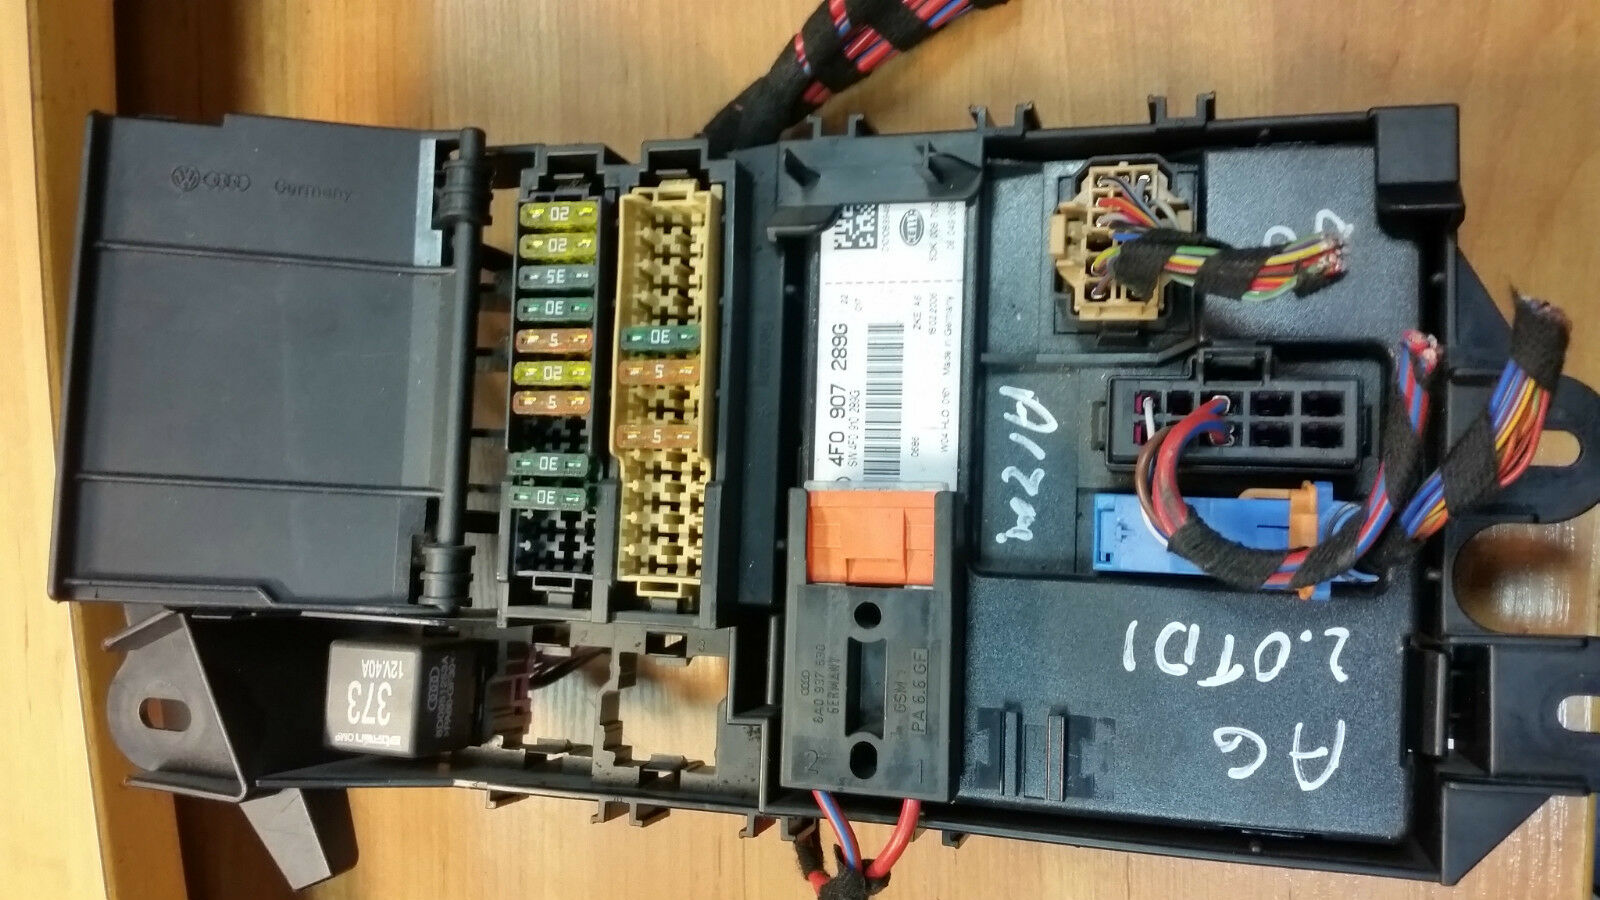 Audi A6 C6 2006 20 Tdi Fuse Box And Comfort Module Ecu 4f0 907 1 Of 3only Available